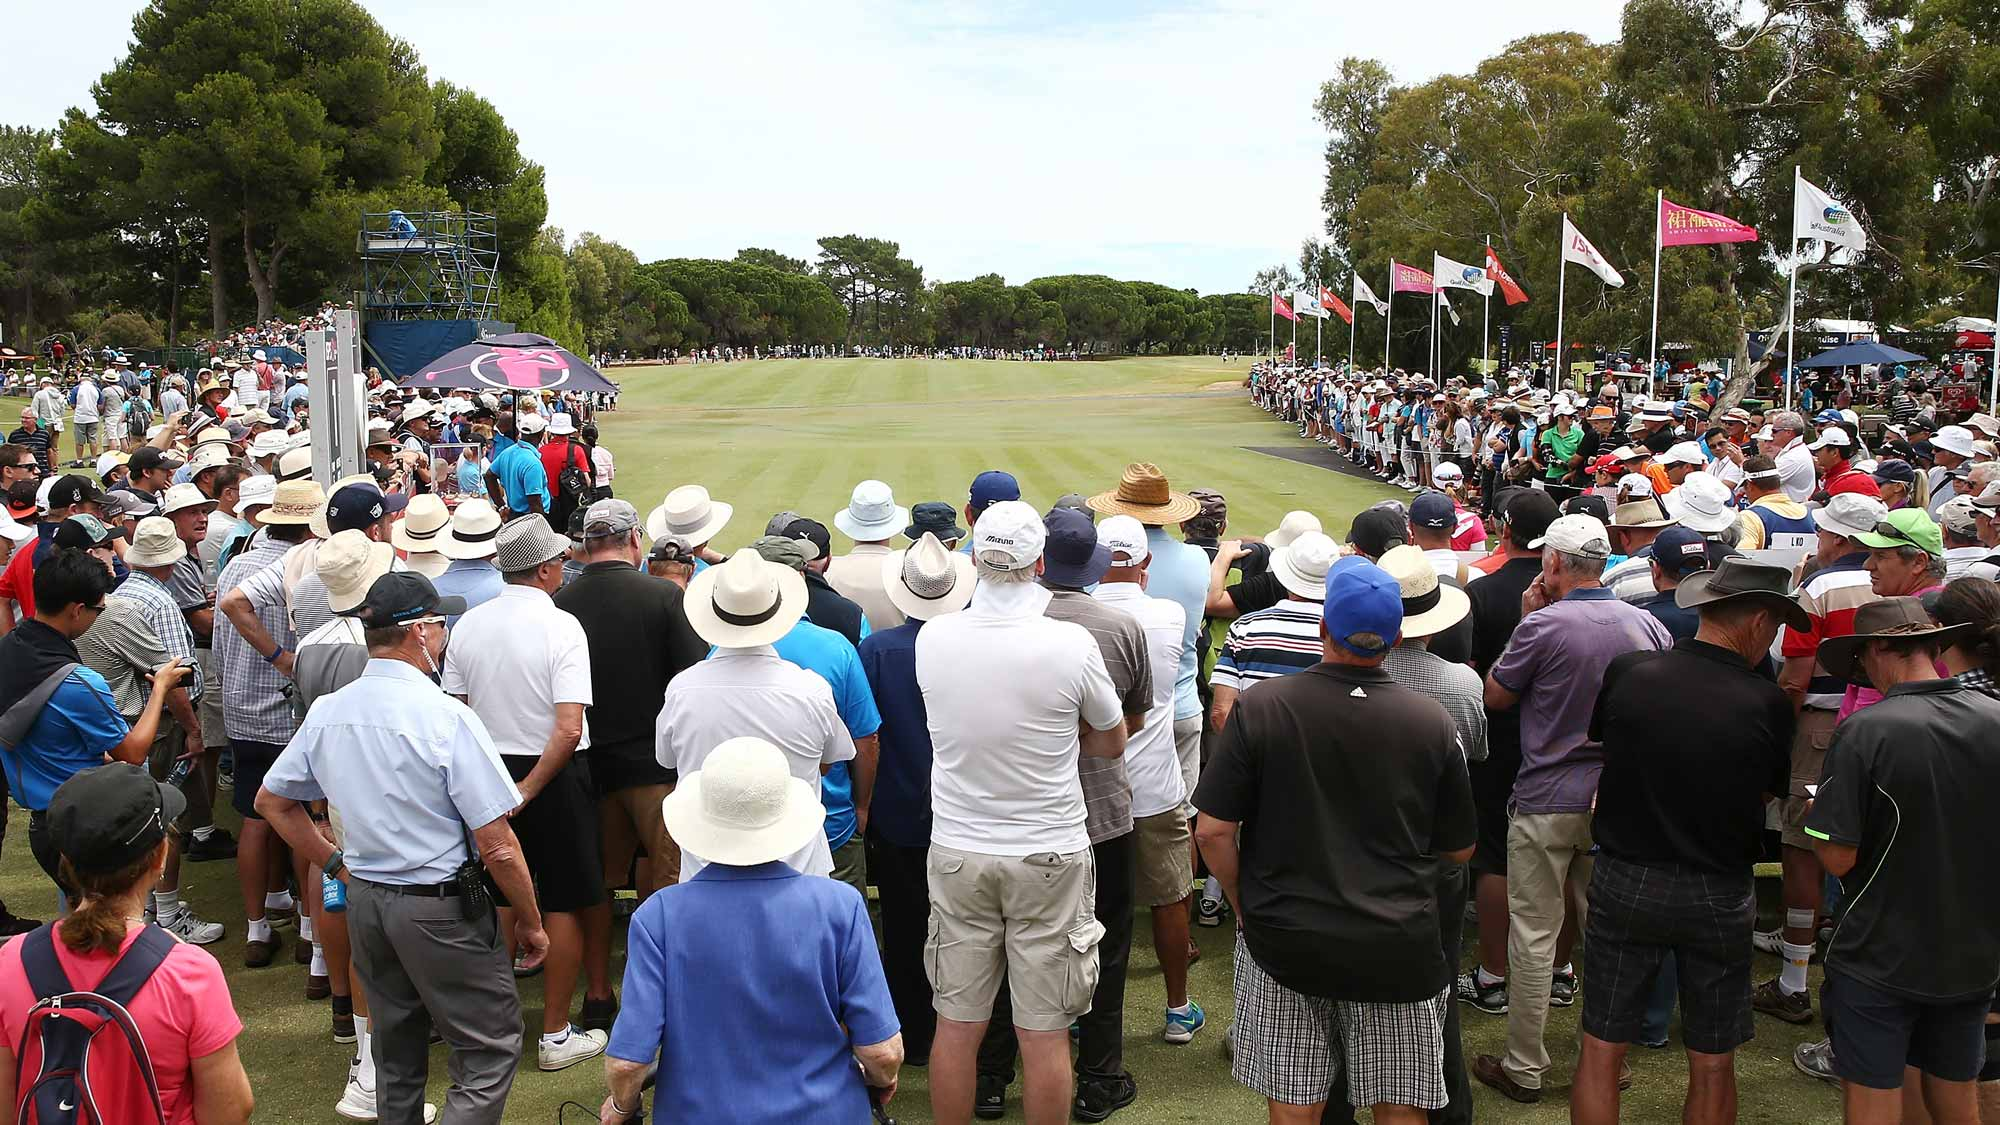 Spectators look on as Lydia Ko of New Zealand tees off during day two of the ISPS Handa Women's Australian Open at The Grange GC